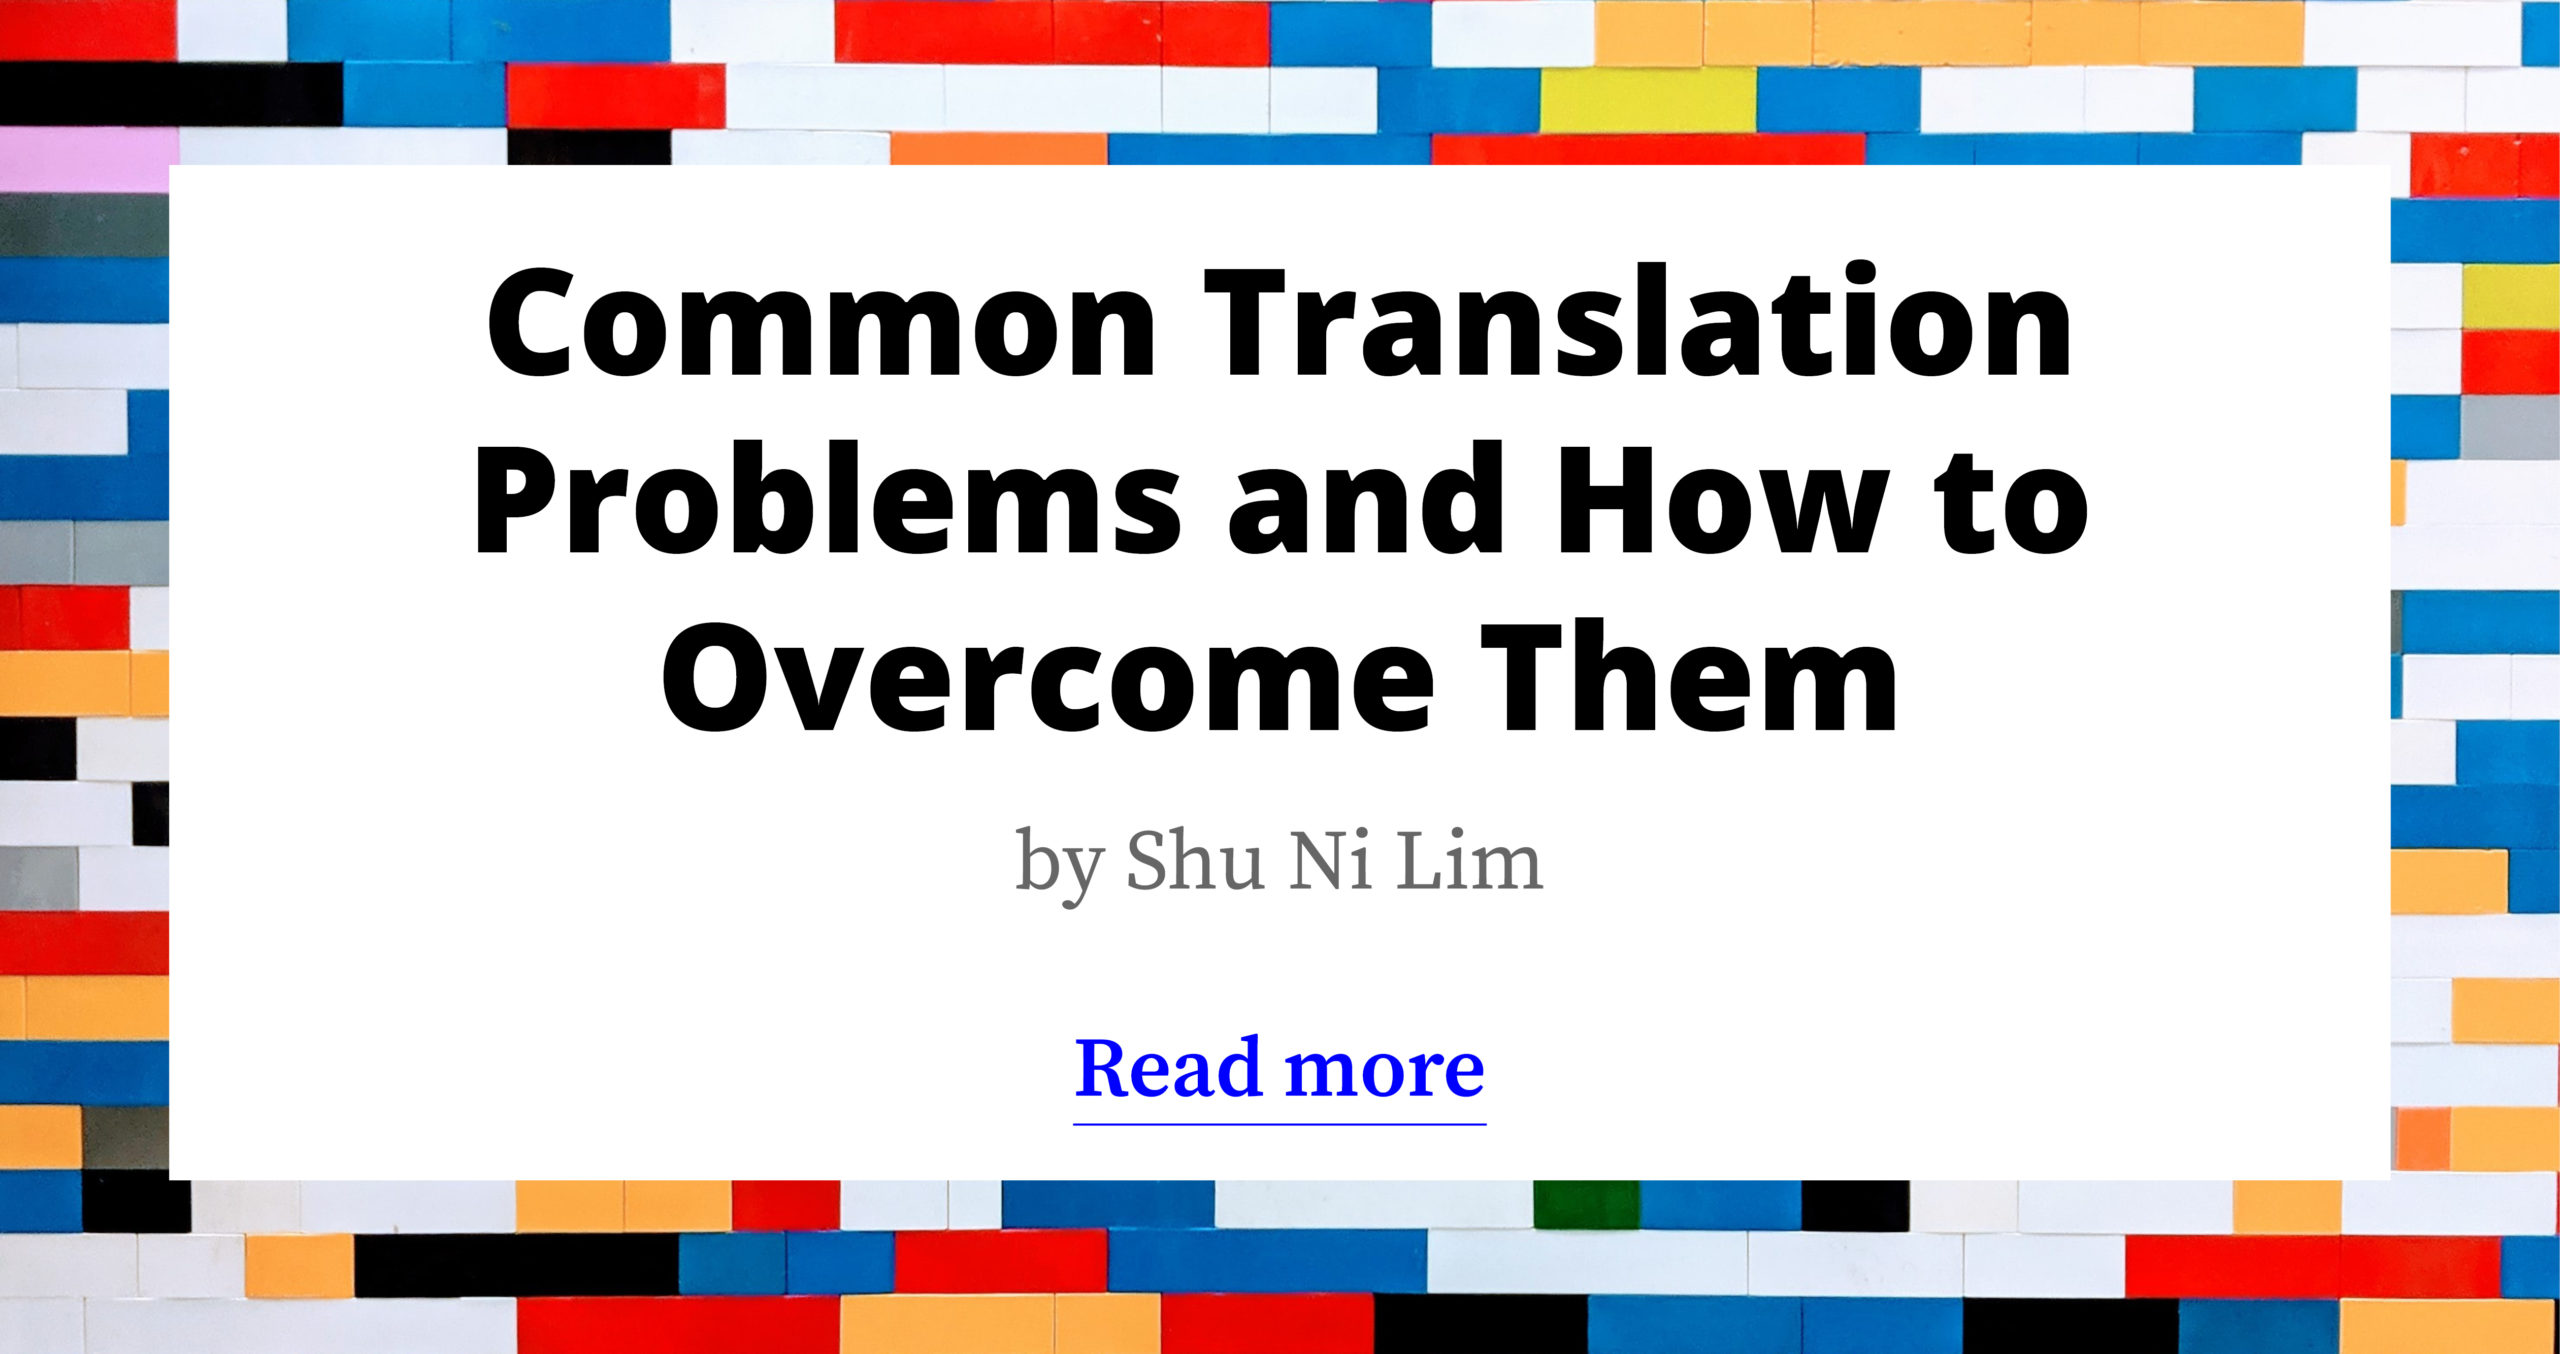 Common Translation Problems & How to Overcome Them